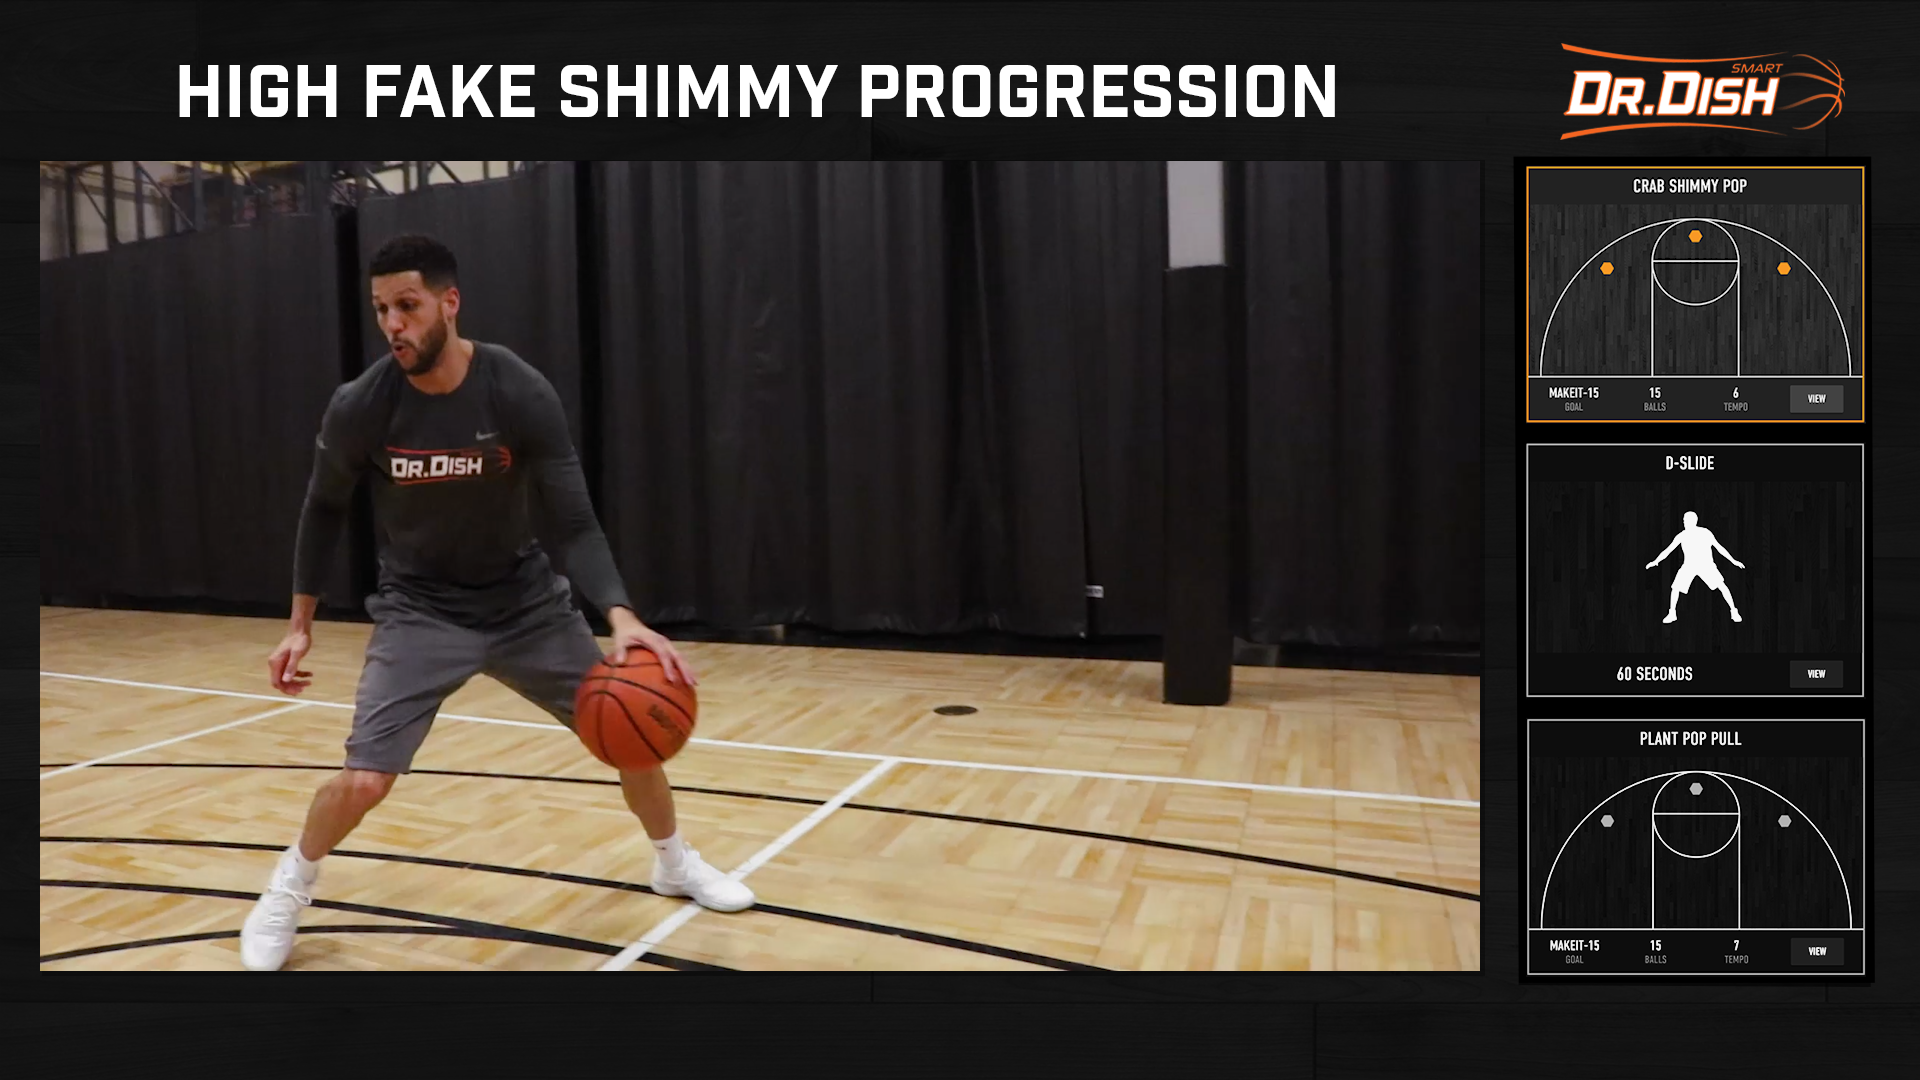 Basketball Drills: High Fake Shimmy Pop Progression Skill Builder Workout